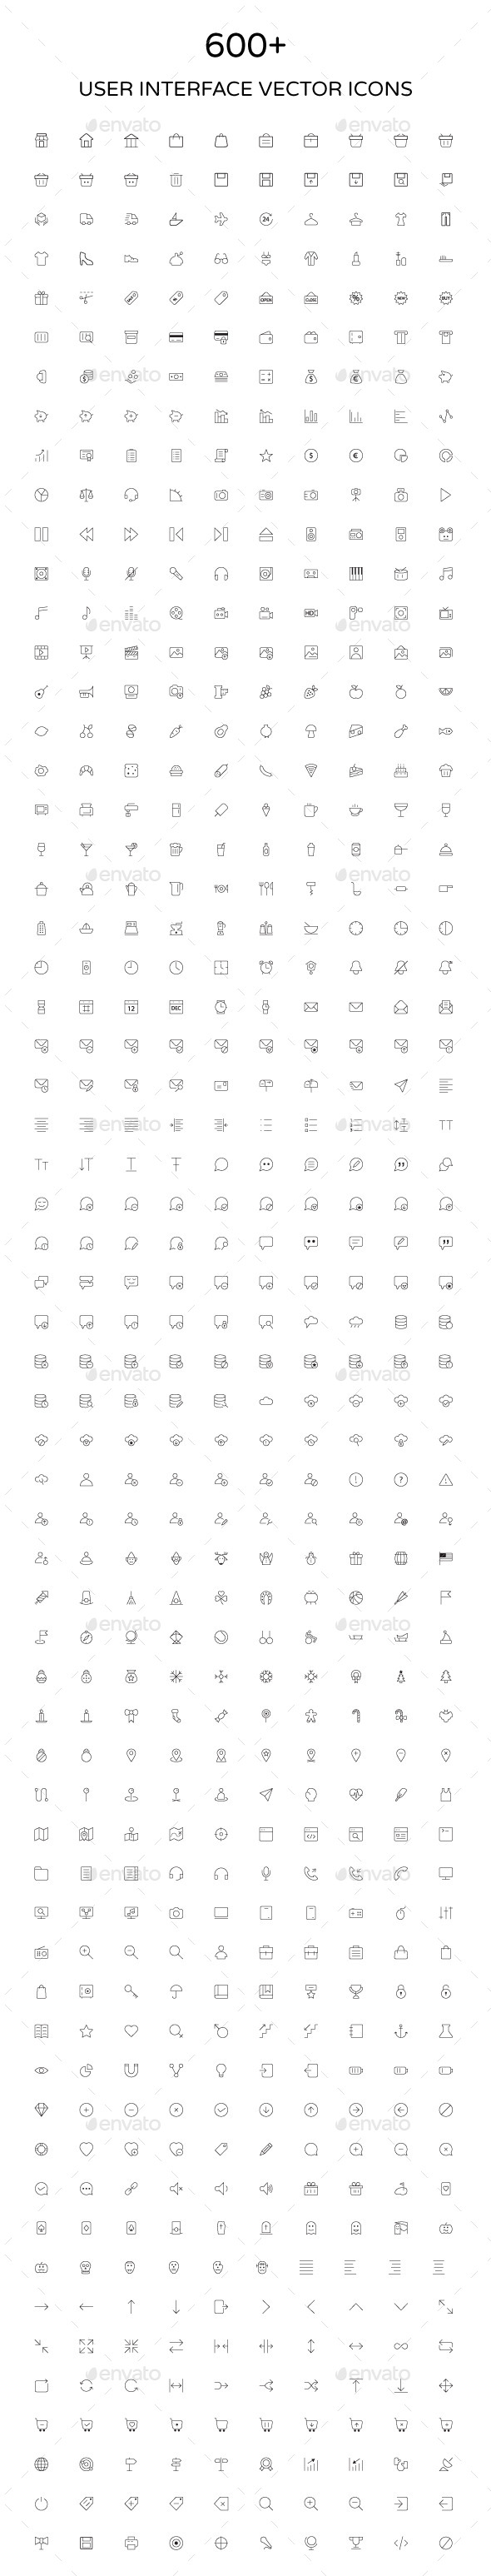 GraphicRiver User Interface Outline Vector Icons 9342386